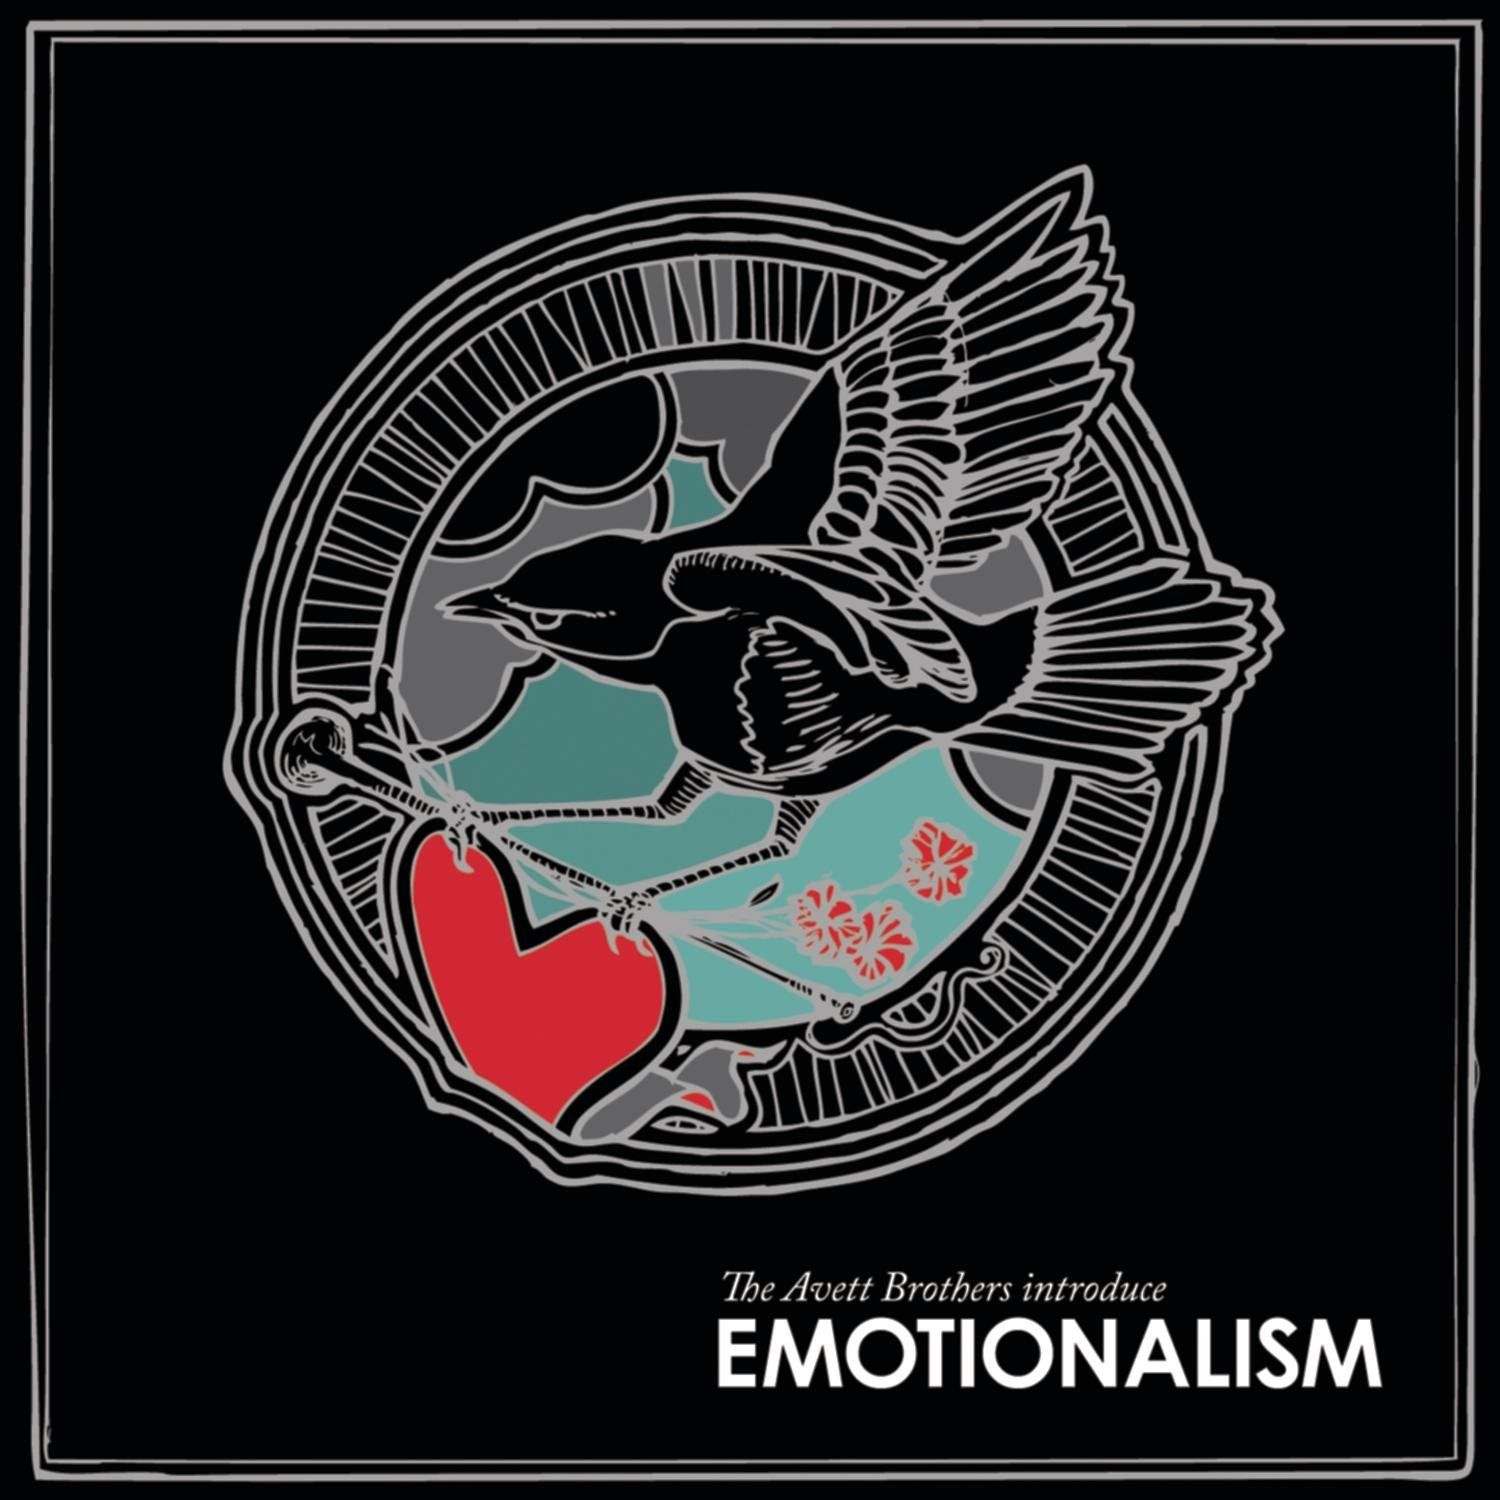 Emotionalism by The Avett Brothers [Folk/Country] [2007